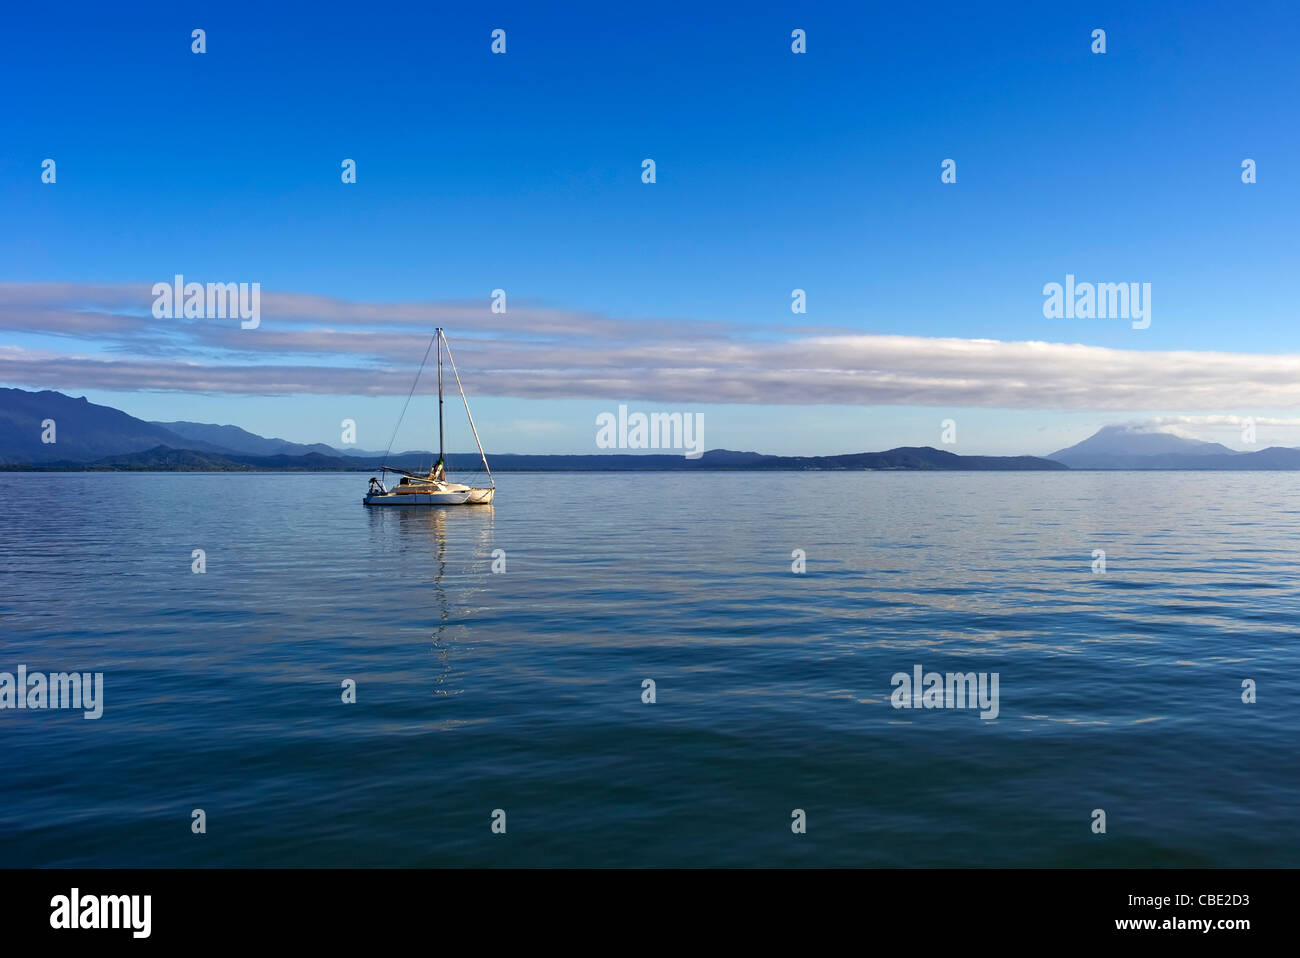 Yacht moored in the Whitsunday Islands North Queensland Australia - Stock Image